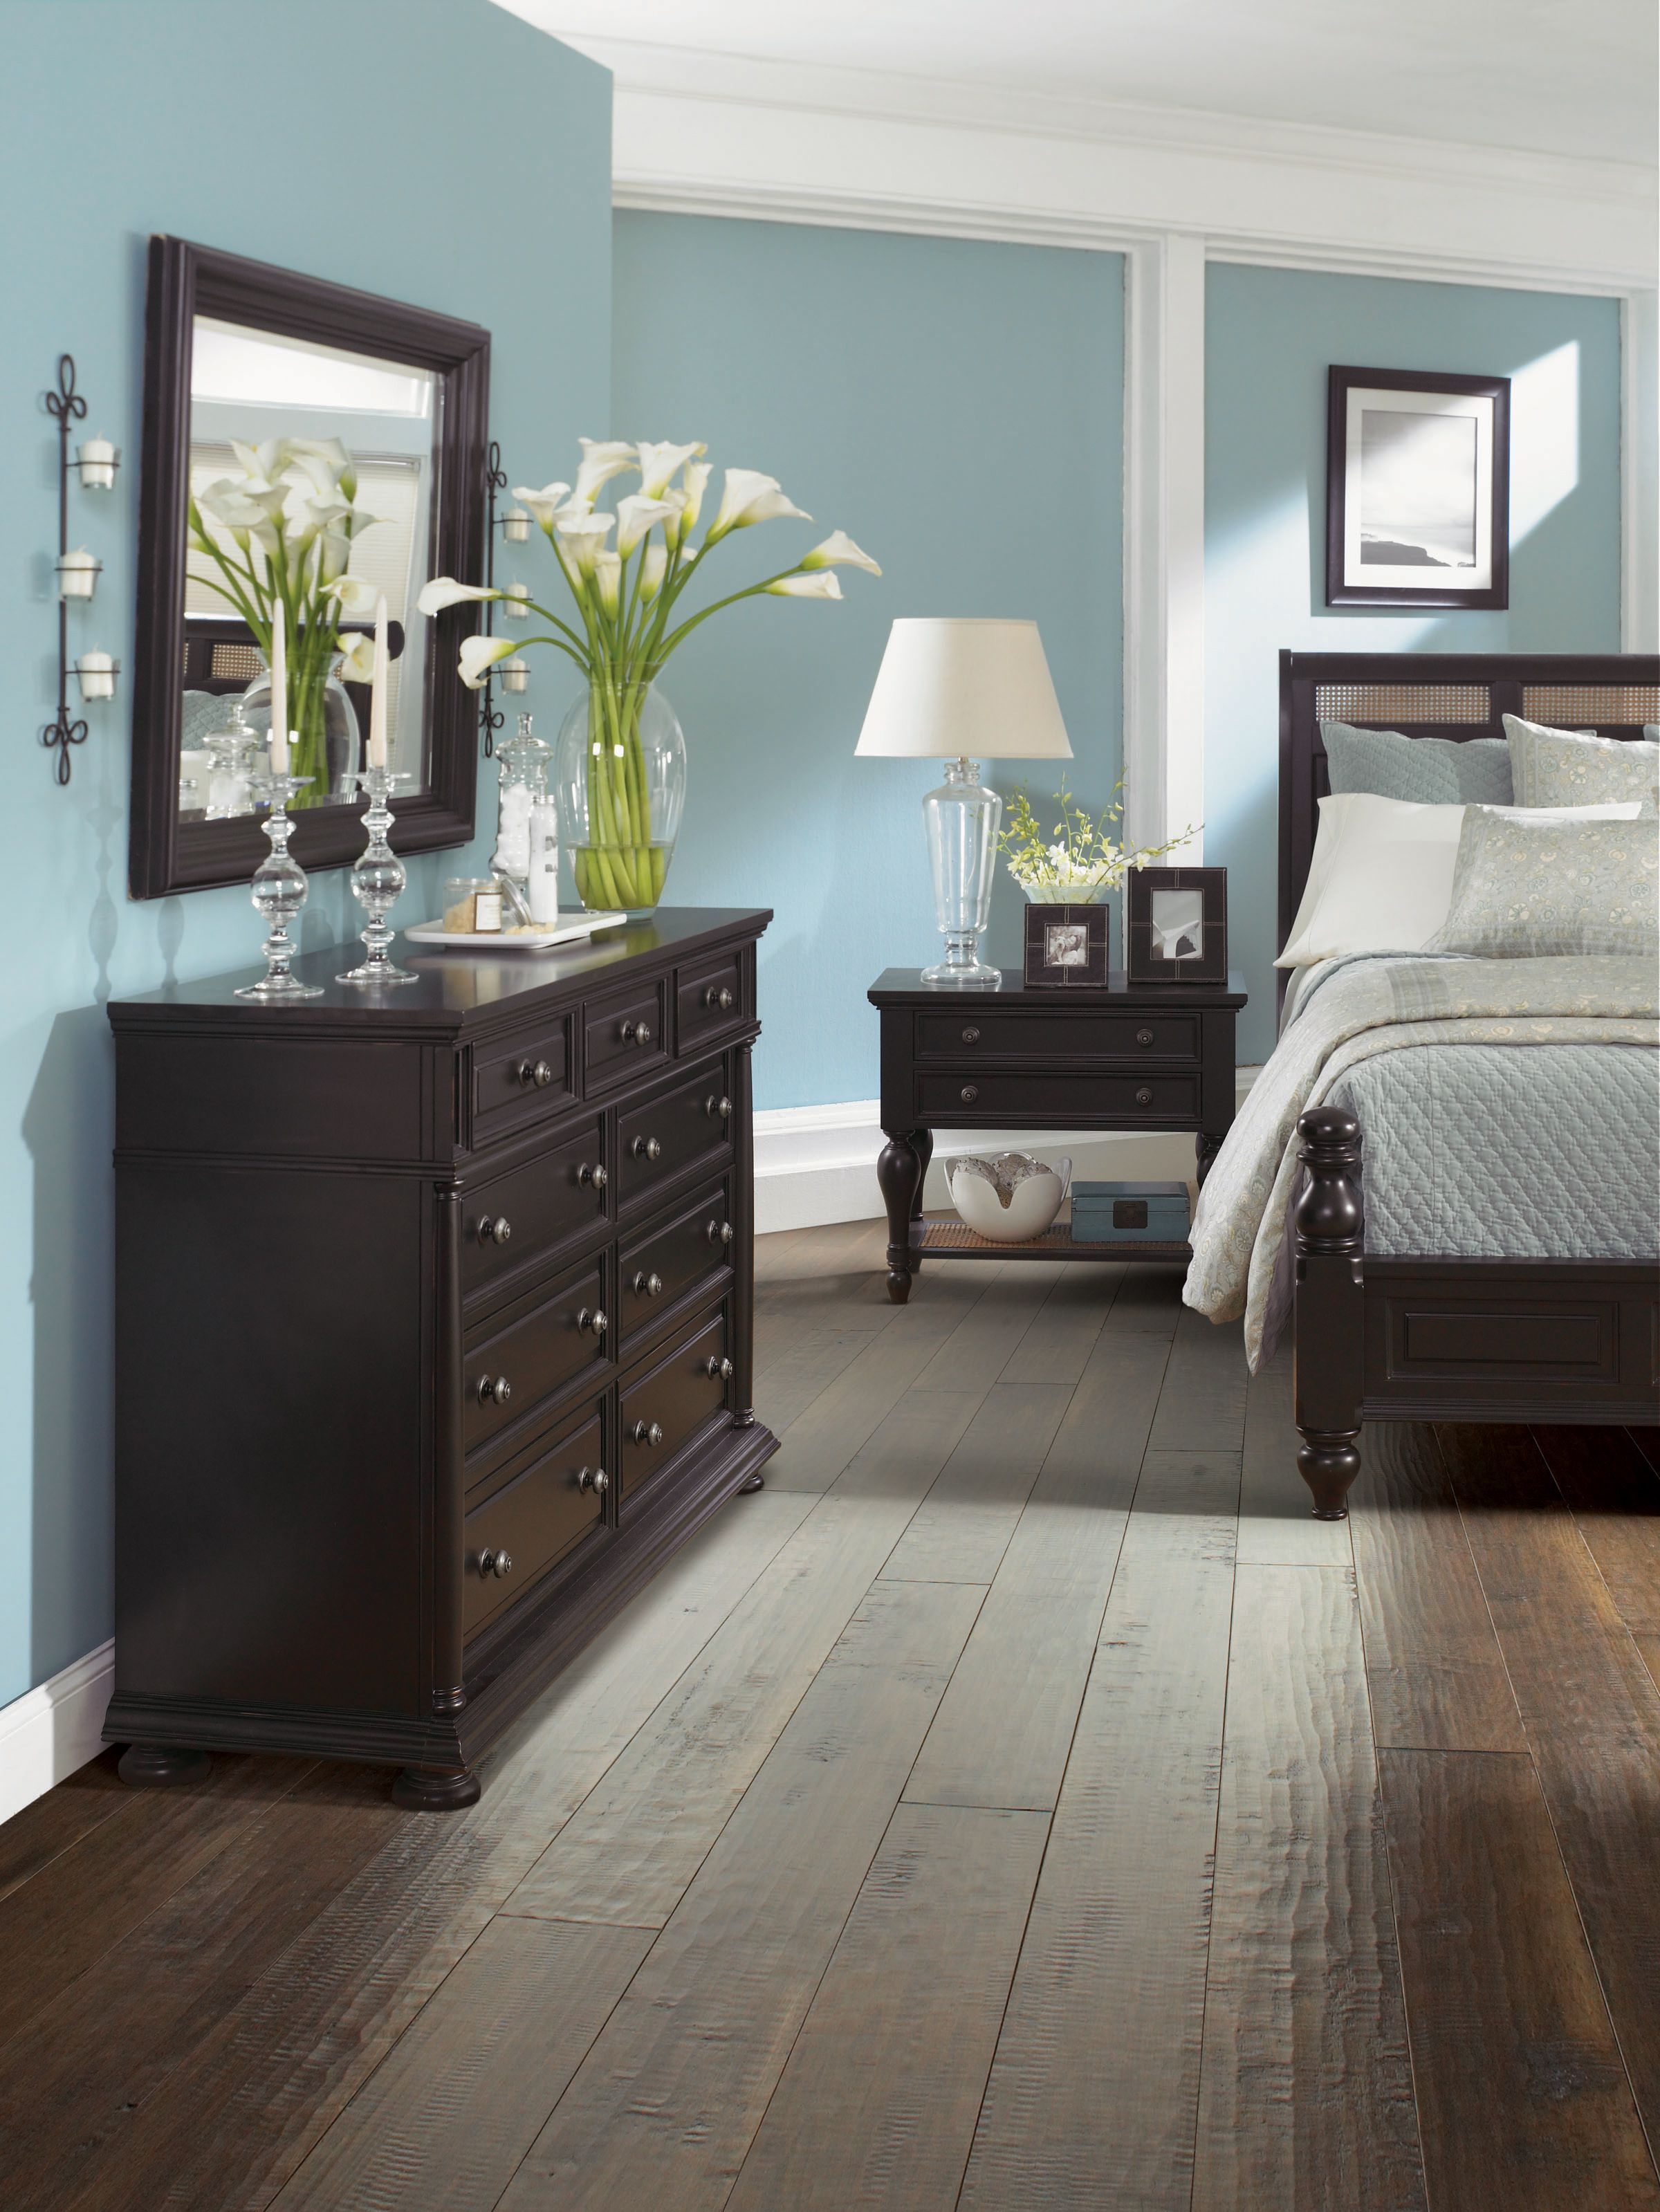 Soft Blue Wall Bedroom With Nice Storage Near Double Bed